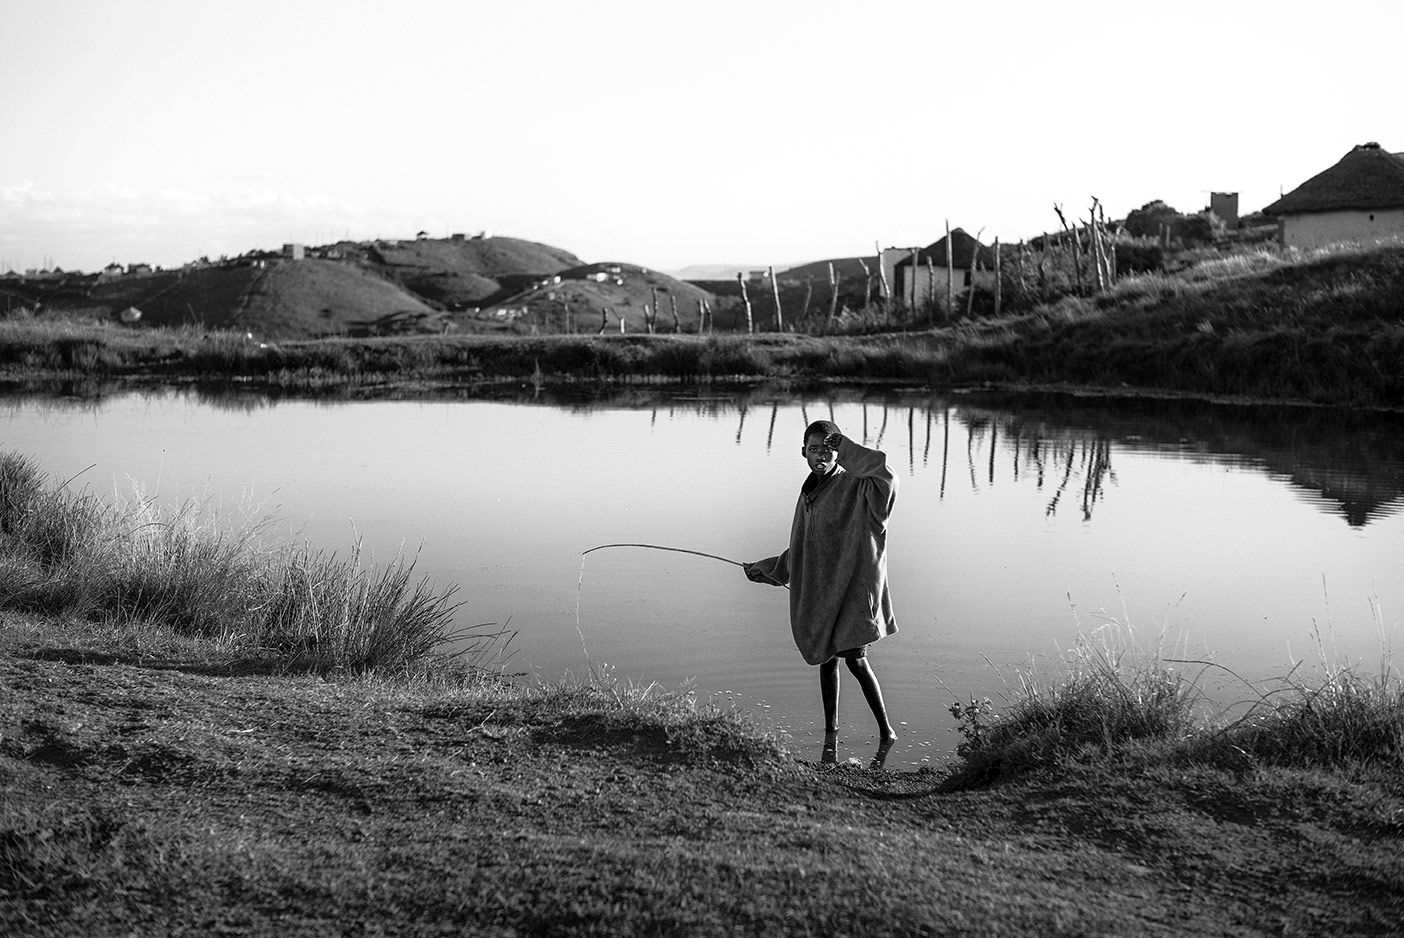 Eine Reise | Mdumbi Fishing Boy | Richard Schabetsberger Photography